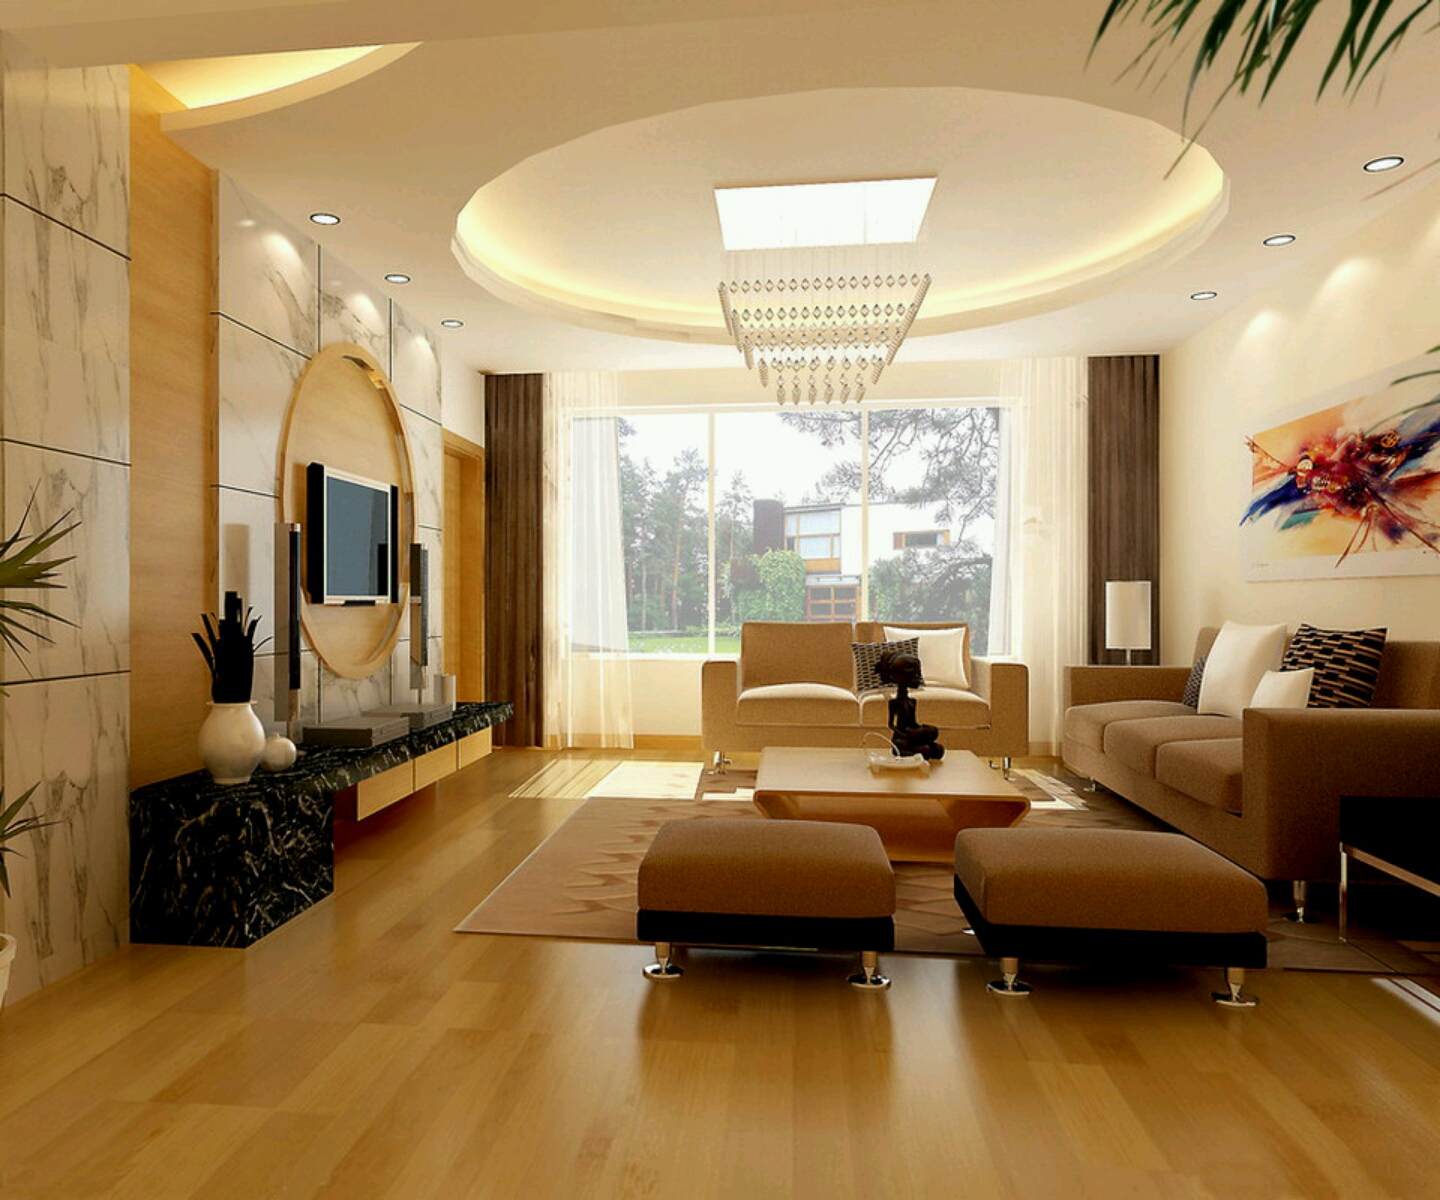 Modern interior decoration living rooms ceiling designs for New room interior design